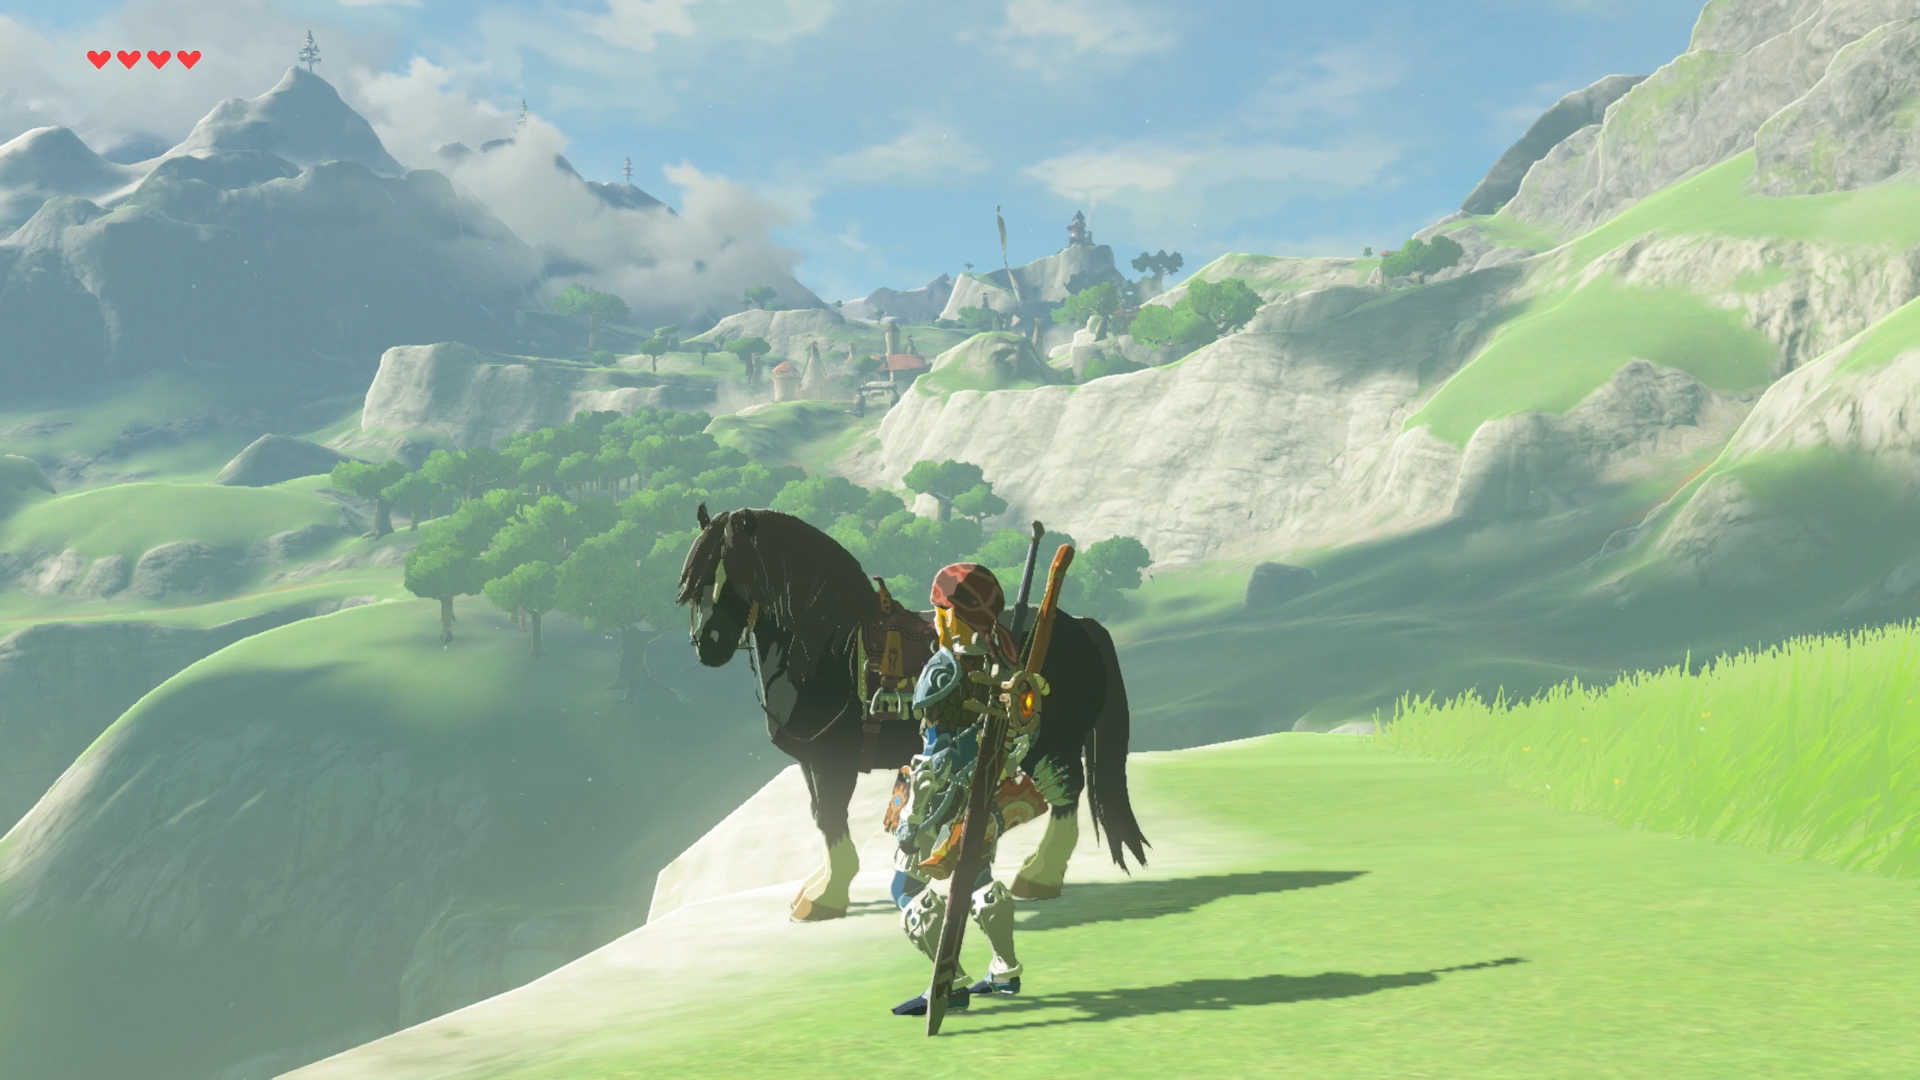 The Legend of Zelda: Breath of the Wild - Link and a black horse